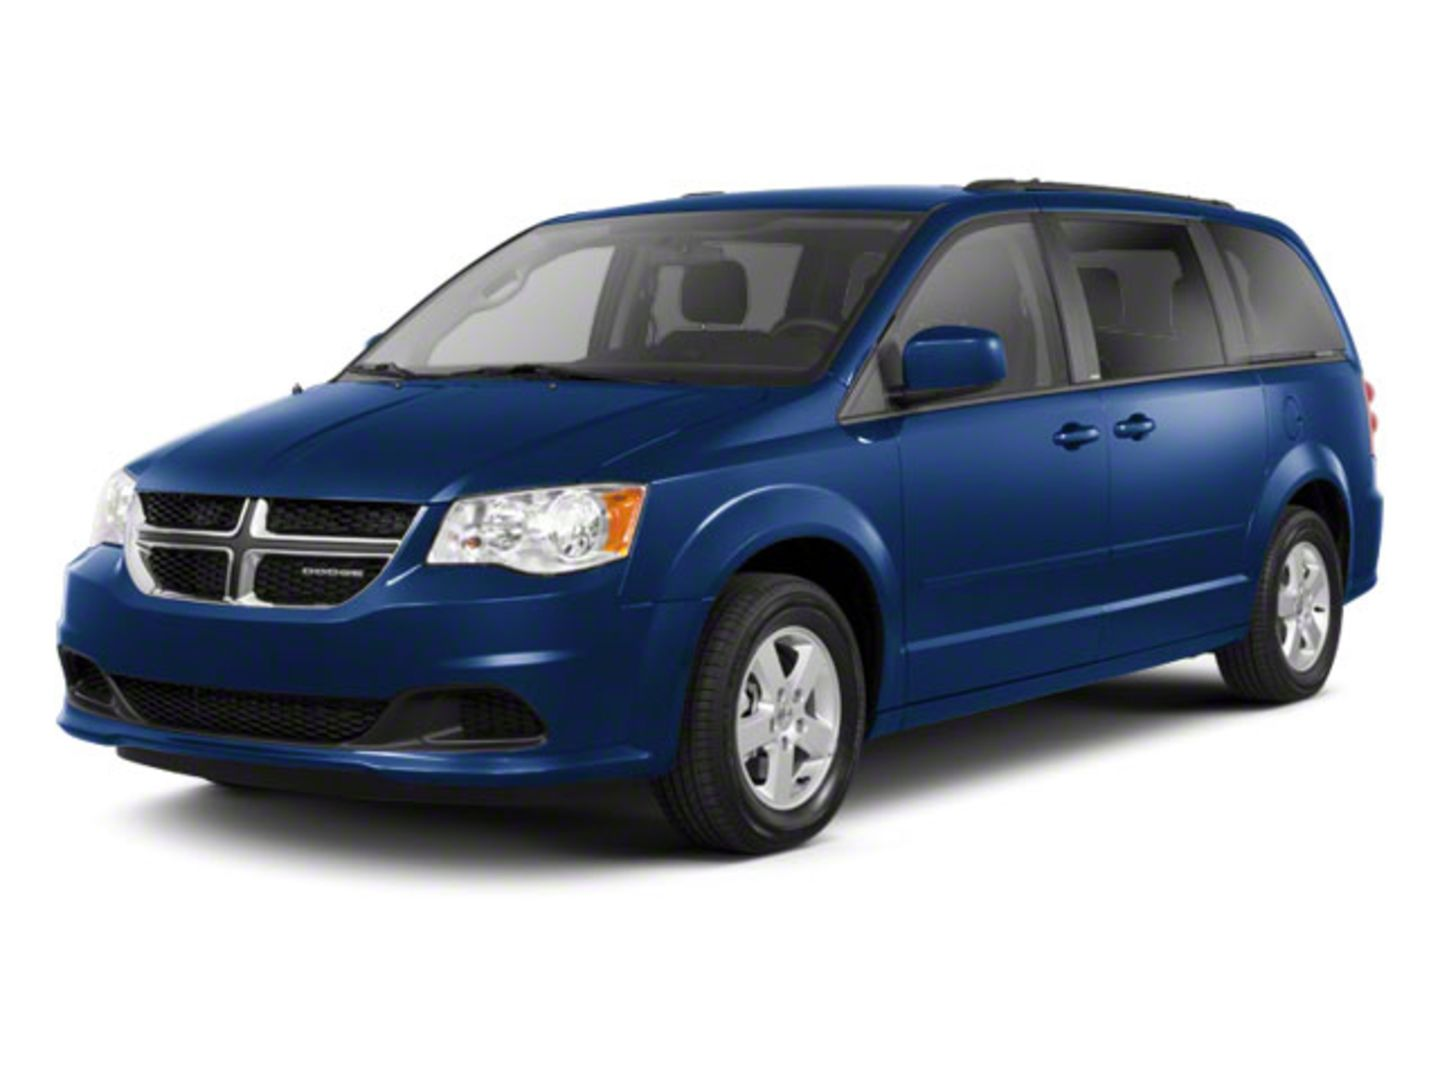 2011 Dodge Grand Caravan Express for sale in Mississauga, Ontario